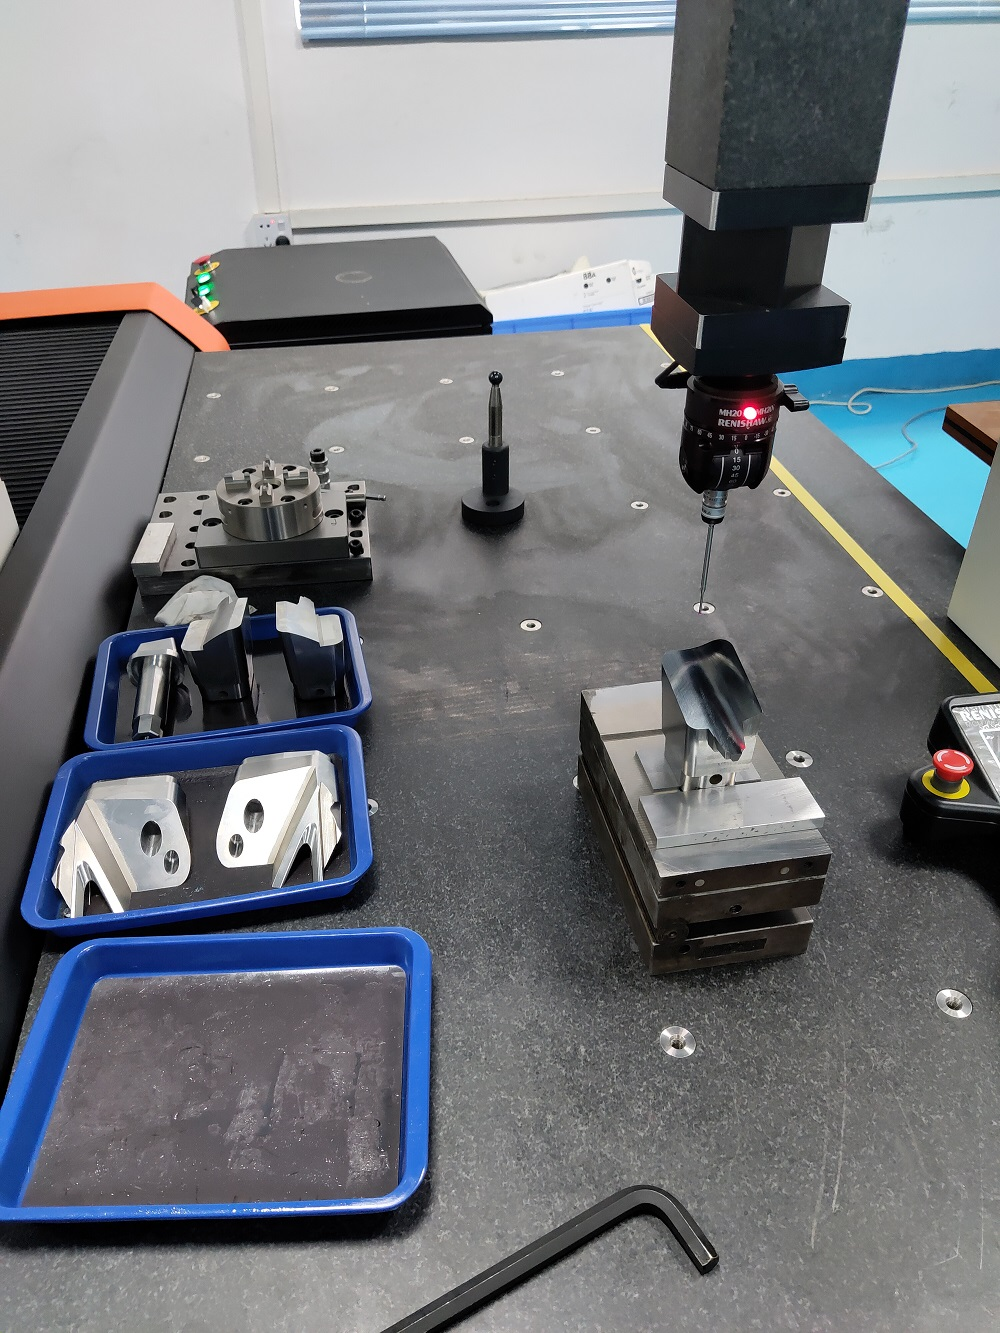 2020 Chinese supplier of precision mould parts and mould components